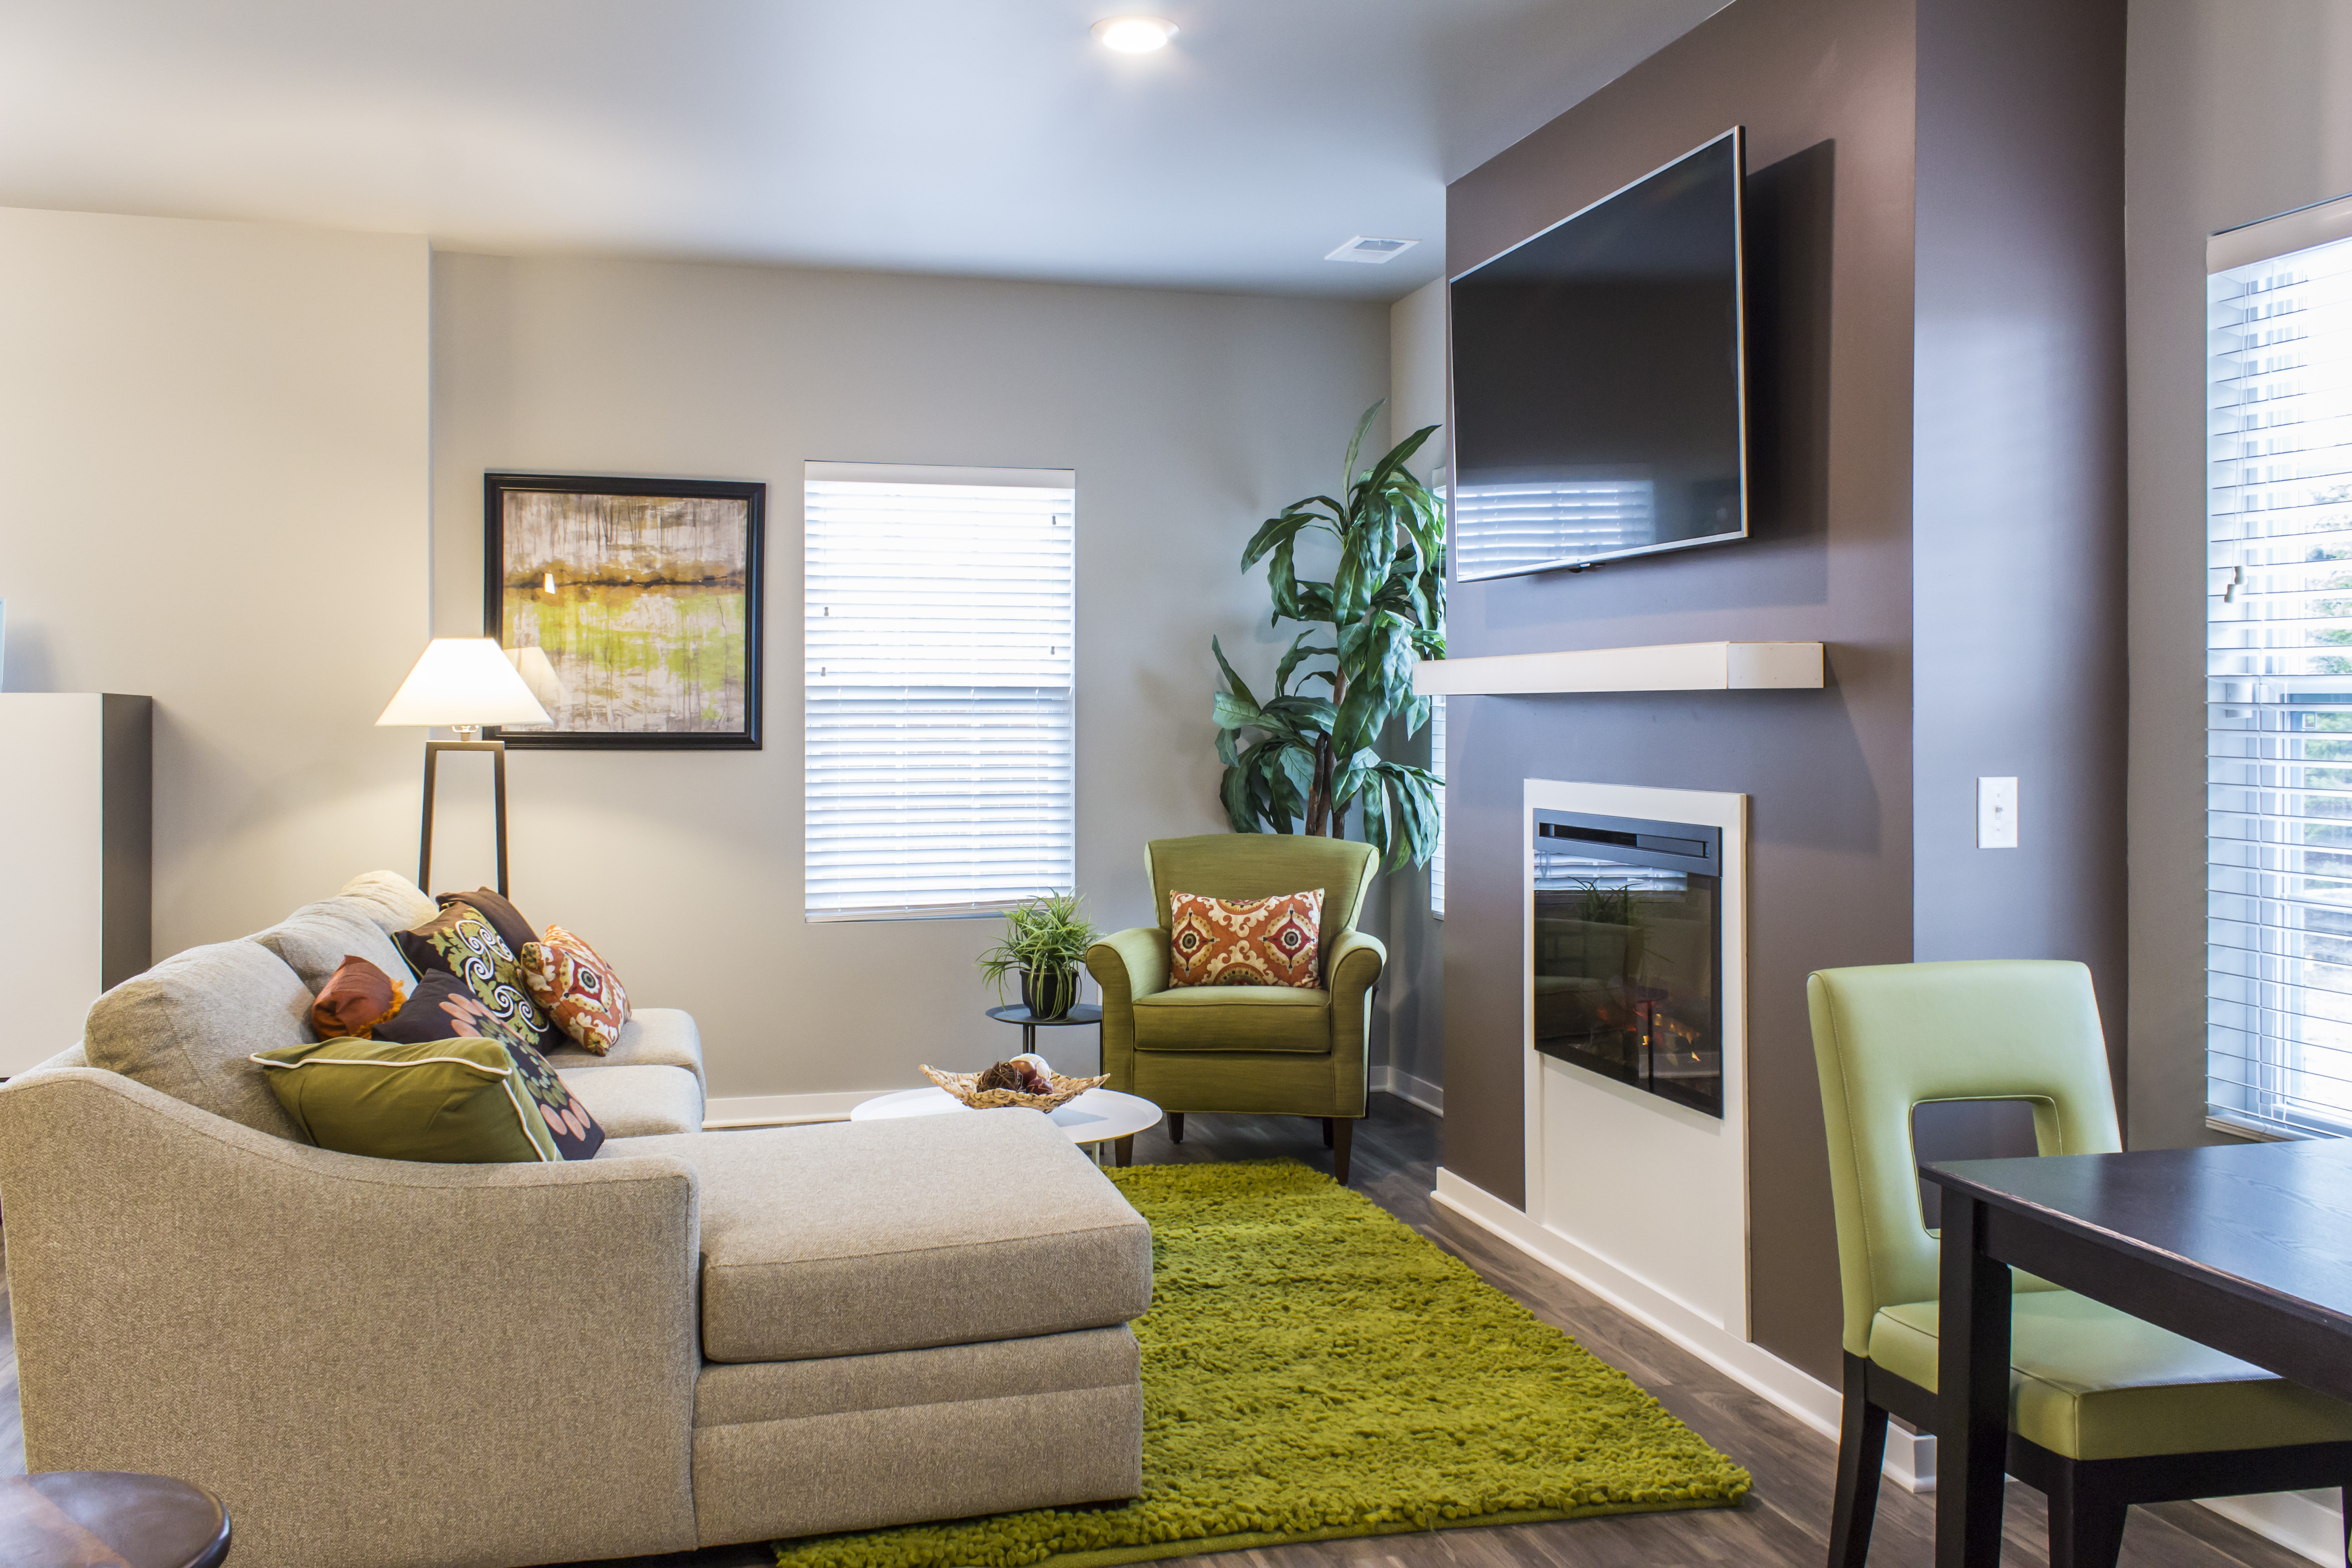 Apartments in michigan lombardo homes for 3 bedroom apartments in southfield mi